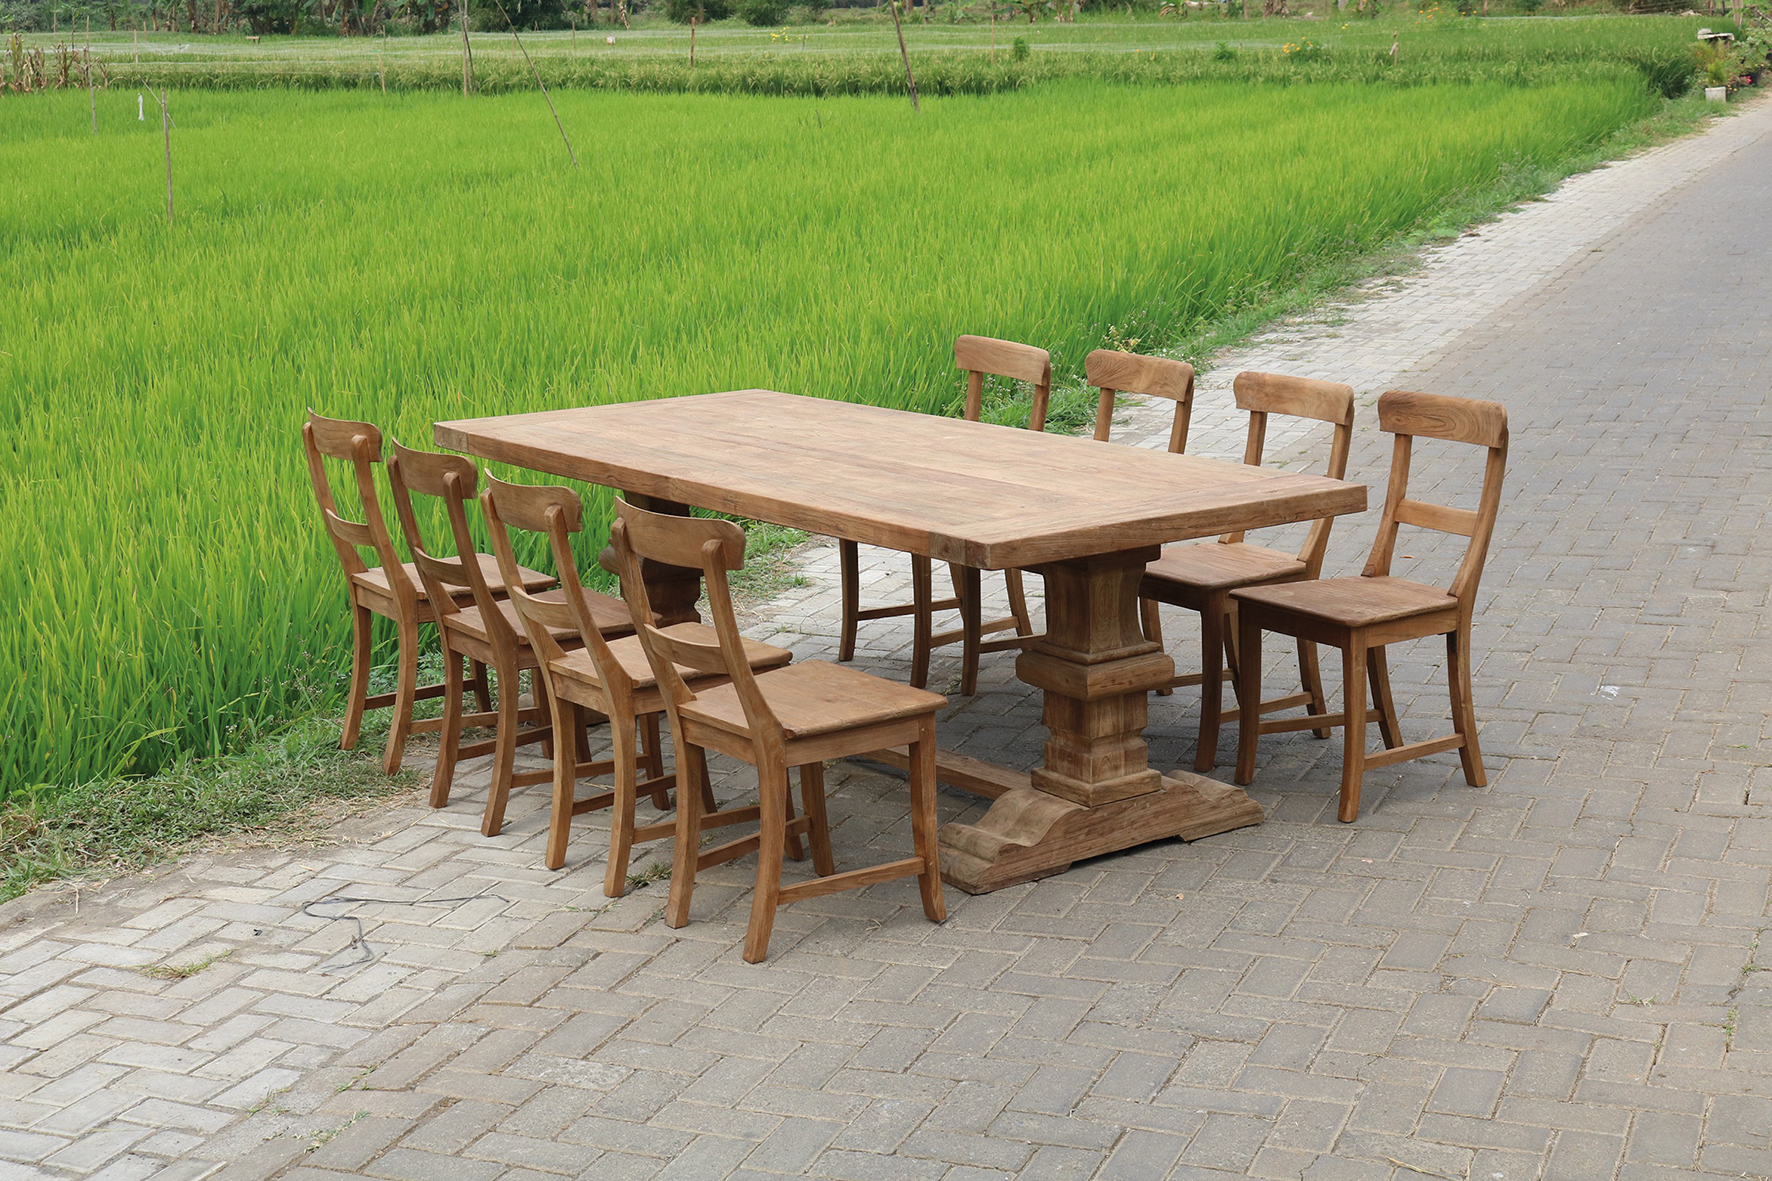 KVS DINING TABLE DENGKLEH 240CM SET MARYOTO CHAIR DENGKLEH